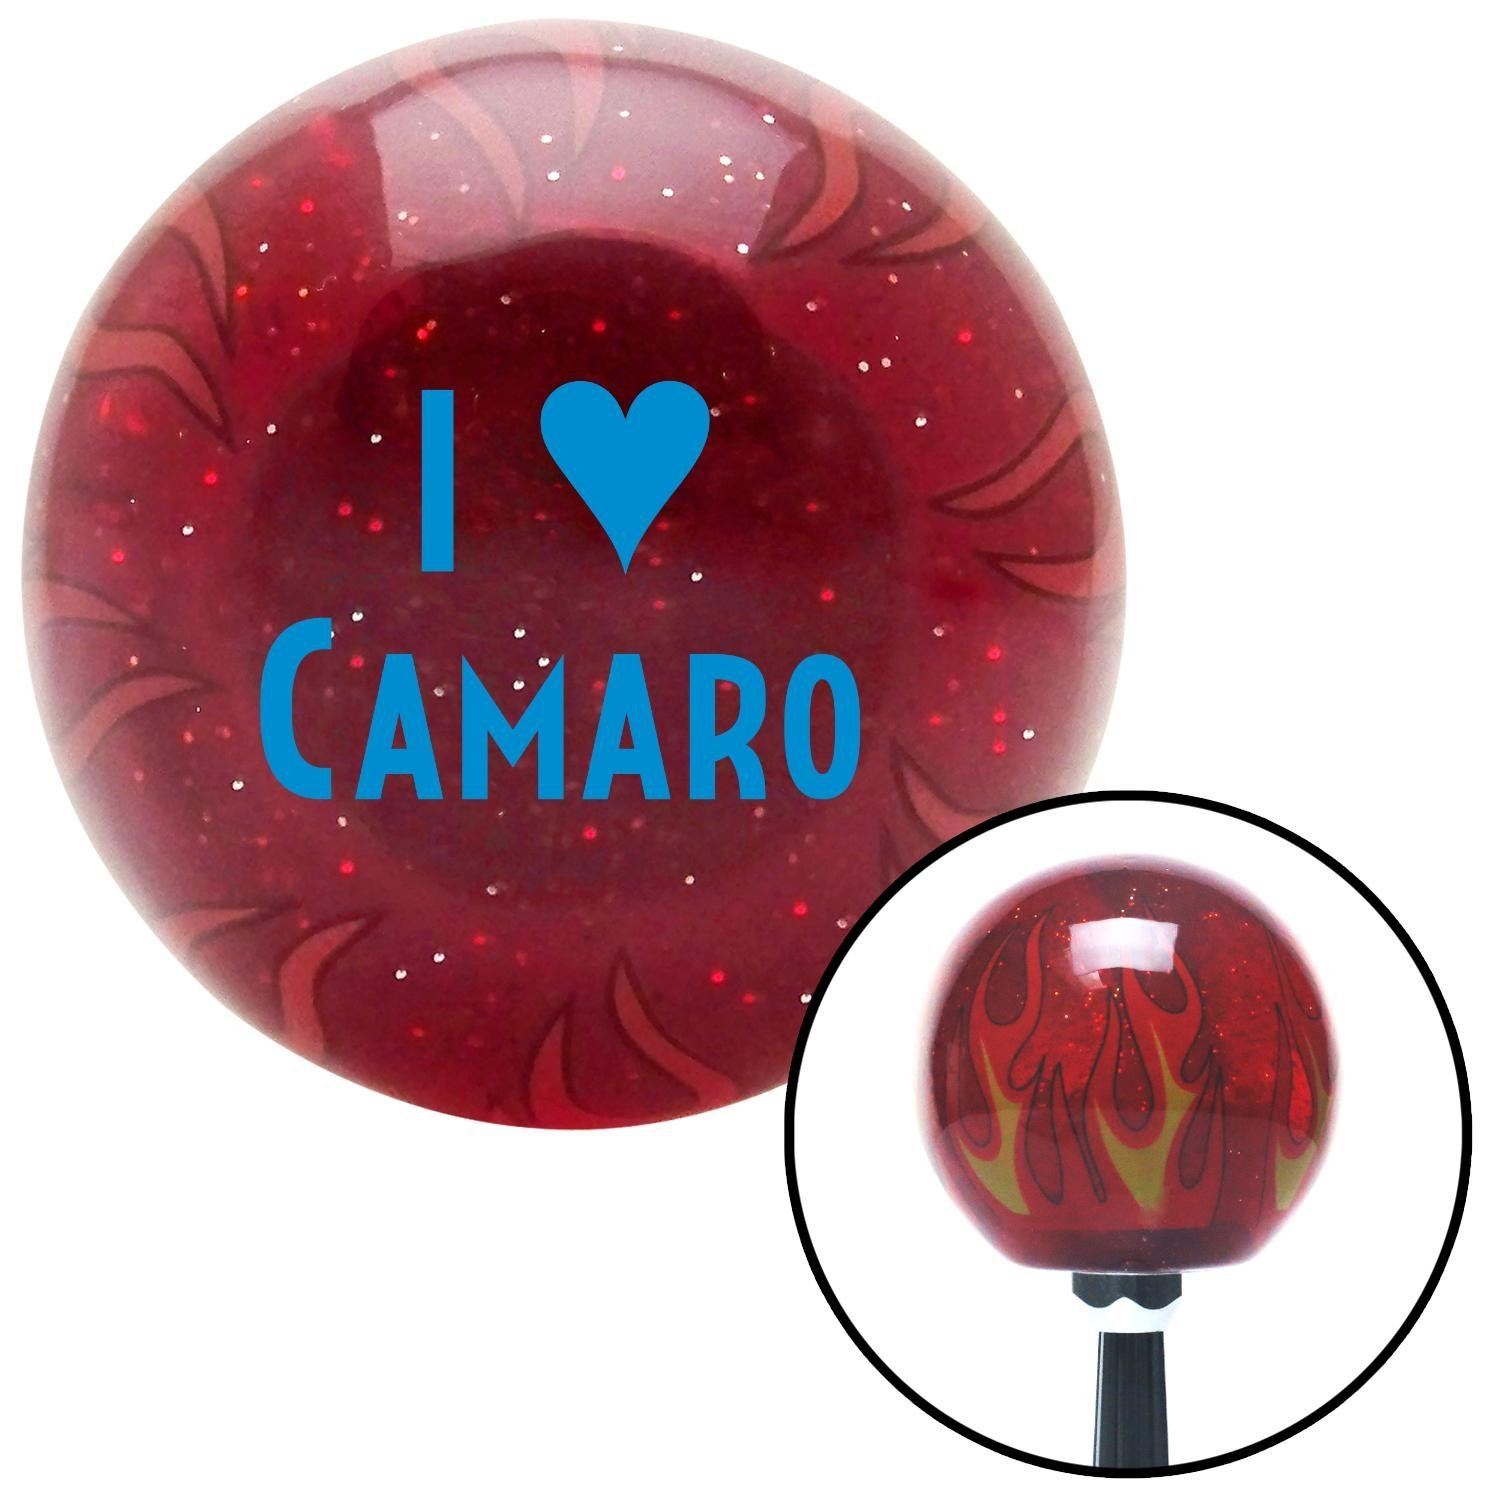 American Shifter 237266 Red Flame Metal Flake Shift Knob with M16 x 1.5 Insert Blue I 3 Camaro